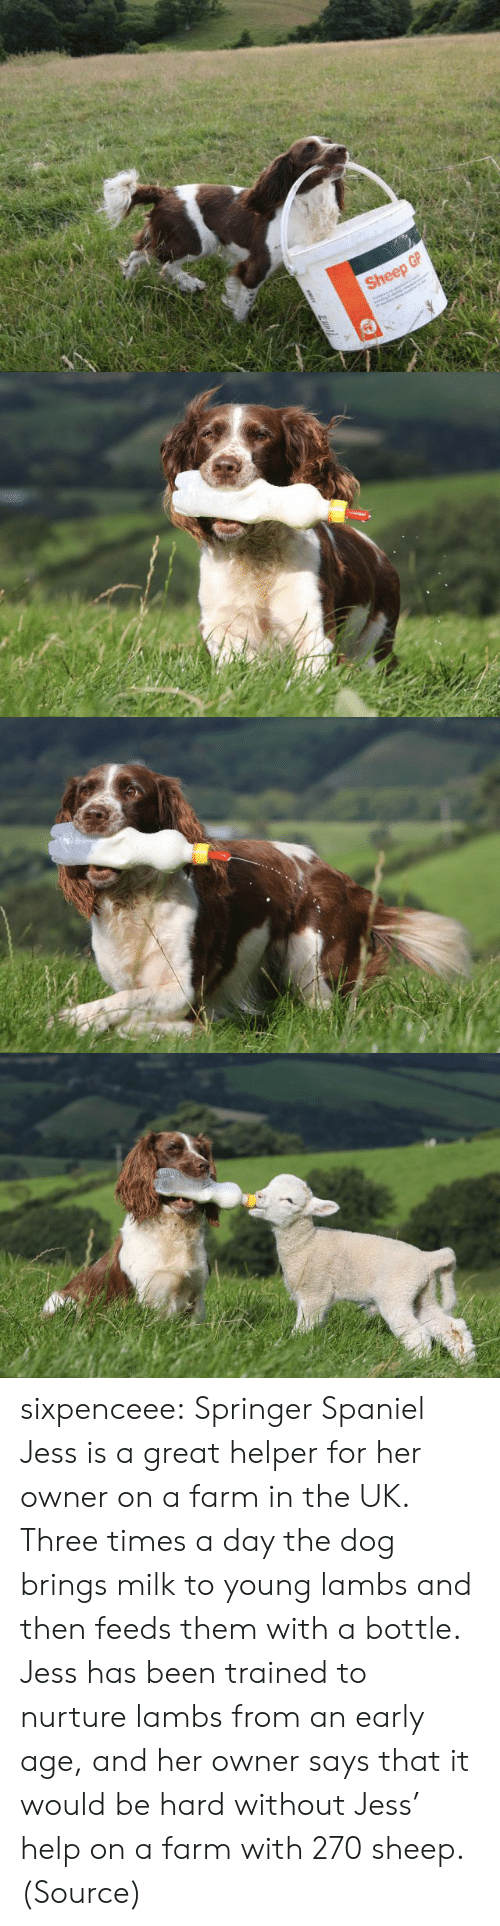 Izismile Com: Sheep GP sixpenceee:  Springer Spaniel Jess is a great helper for her owner on a farm in the UK. Three times a day the dog brings milk to young lambs and then feeds them with a bottle. Jess has been trained to nurture lambs from an early age, and her owner says that it would be hard without Jess' help on a farm with 270 sheep. (Source)